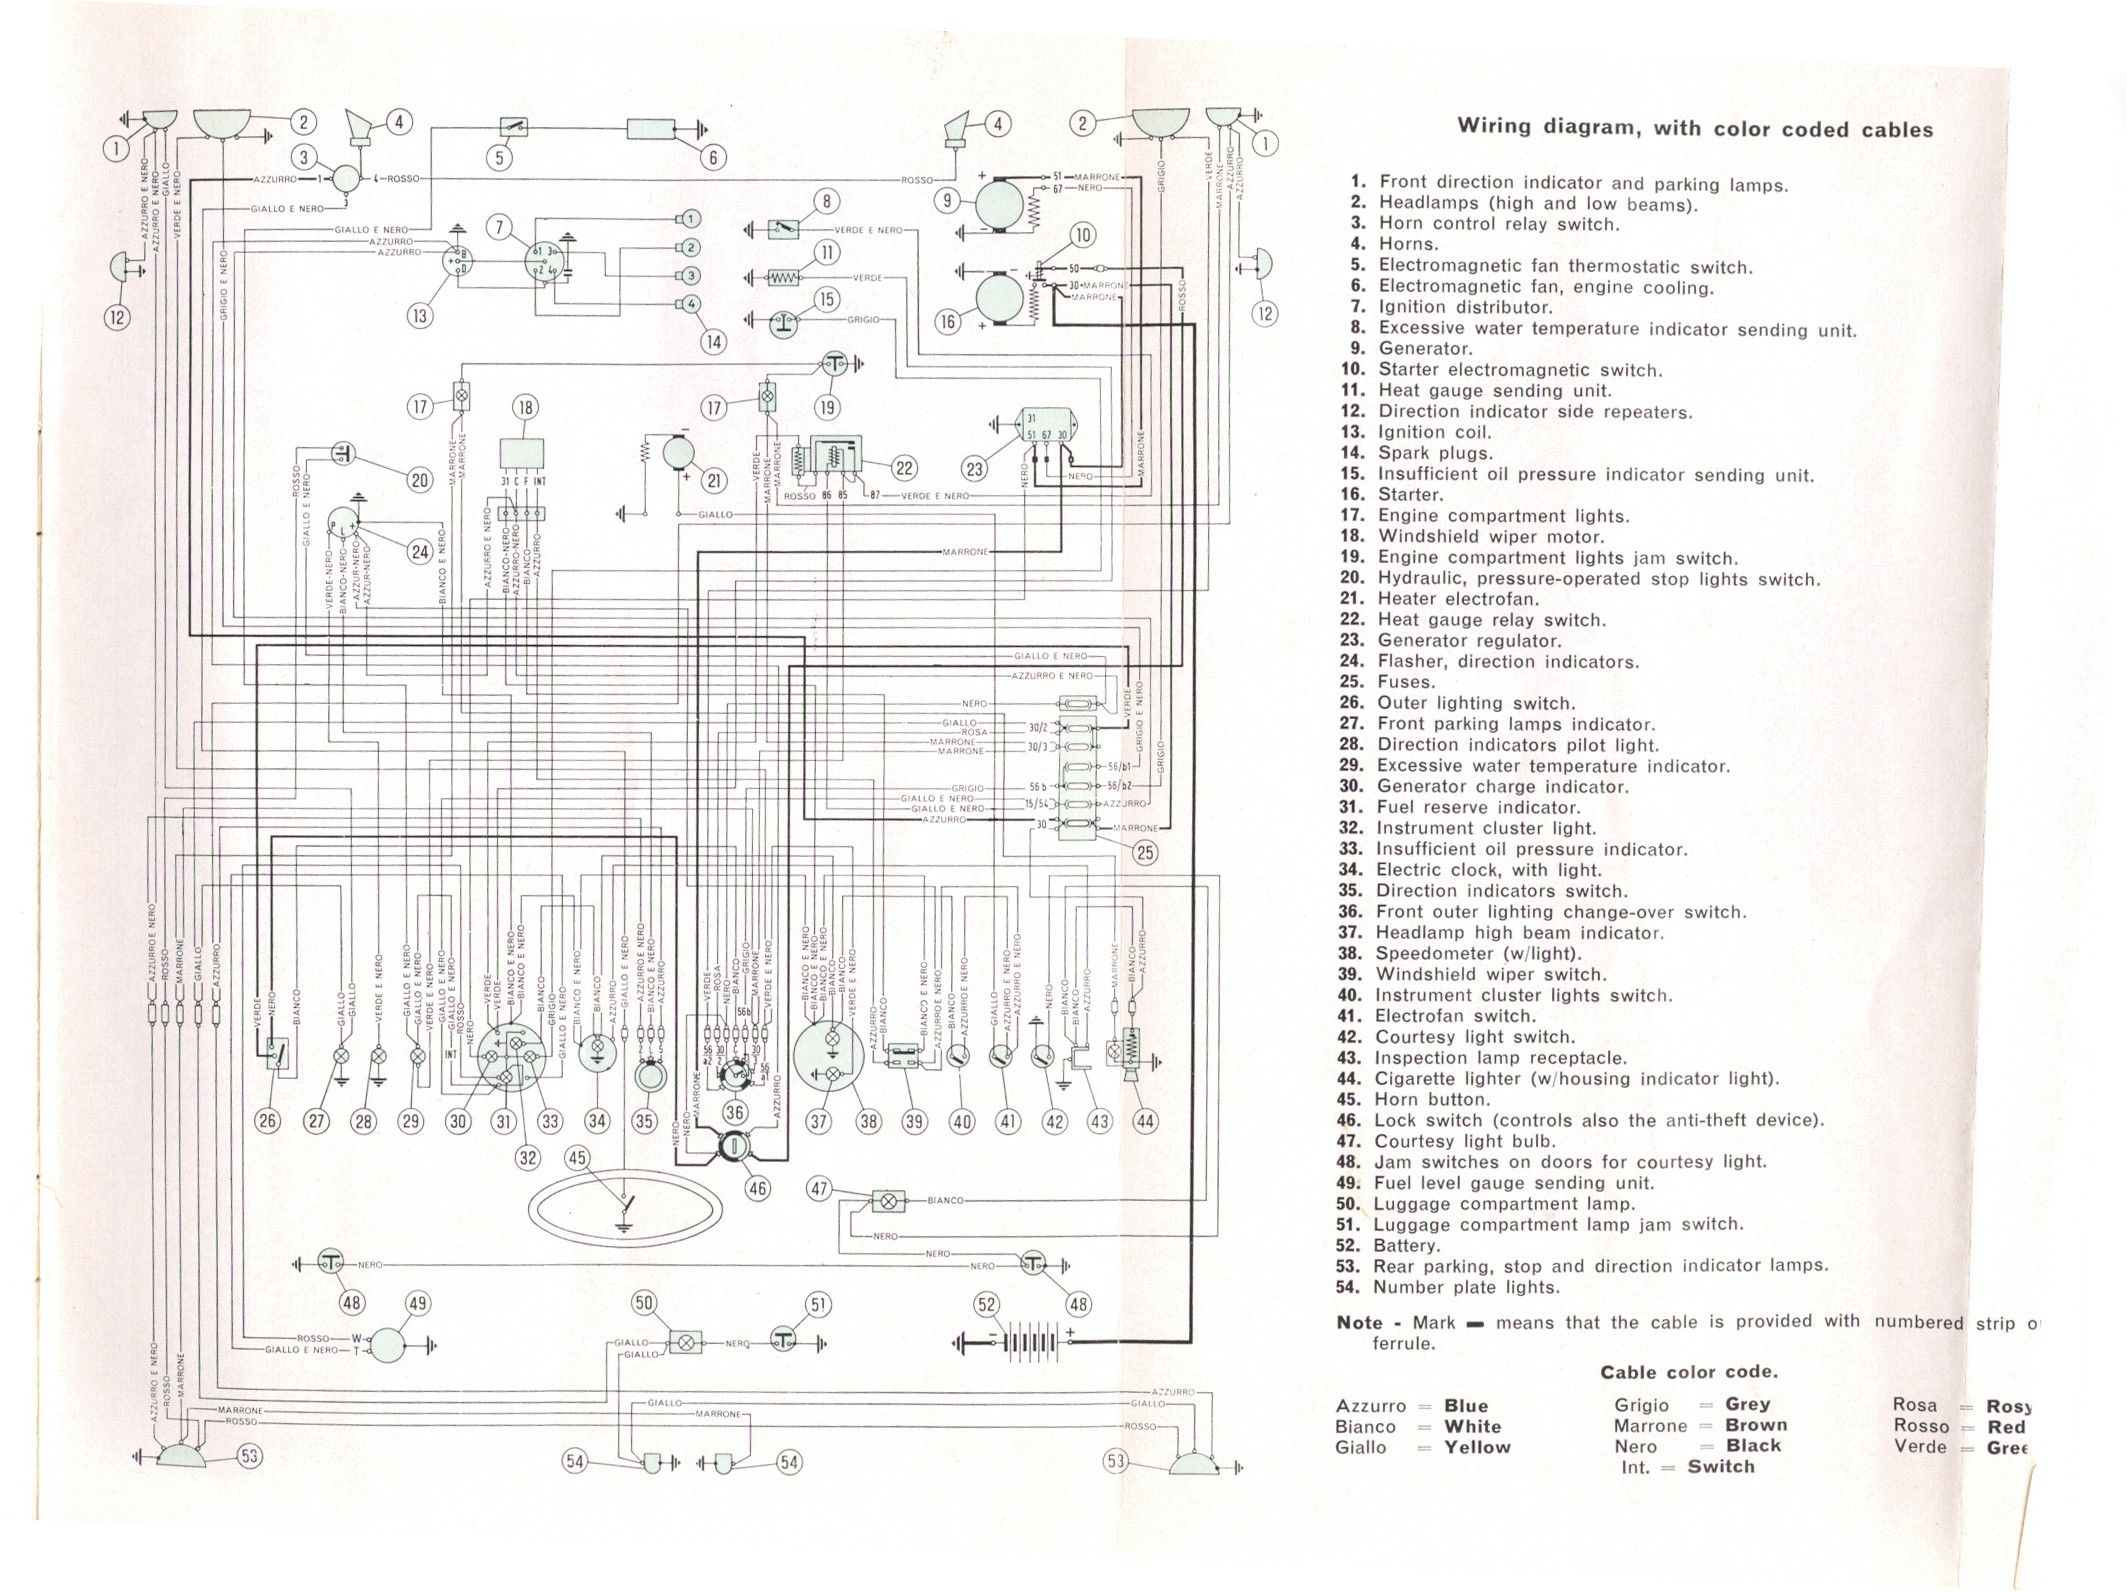 Unique Gm Ac Wiring Diagram #diagramsample #diagramformats